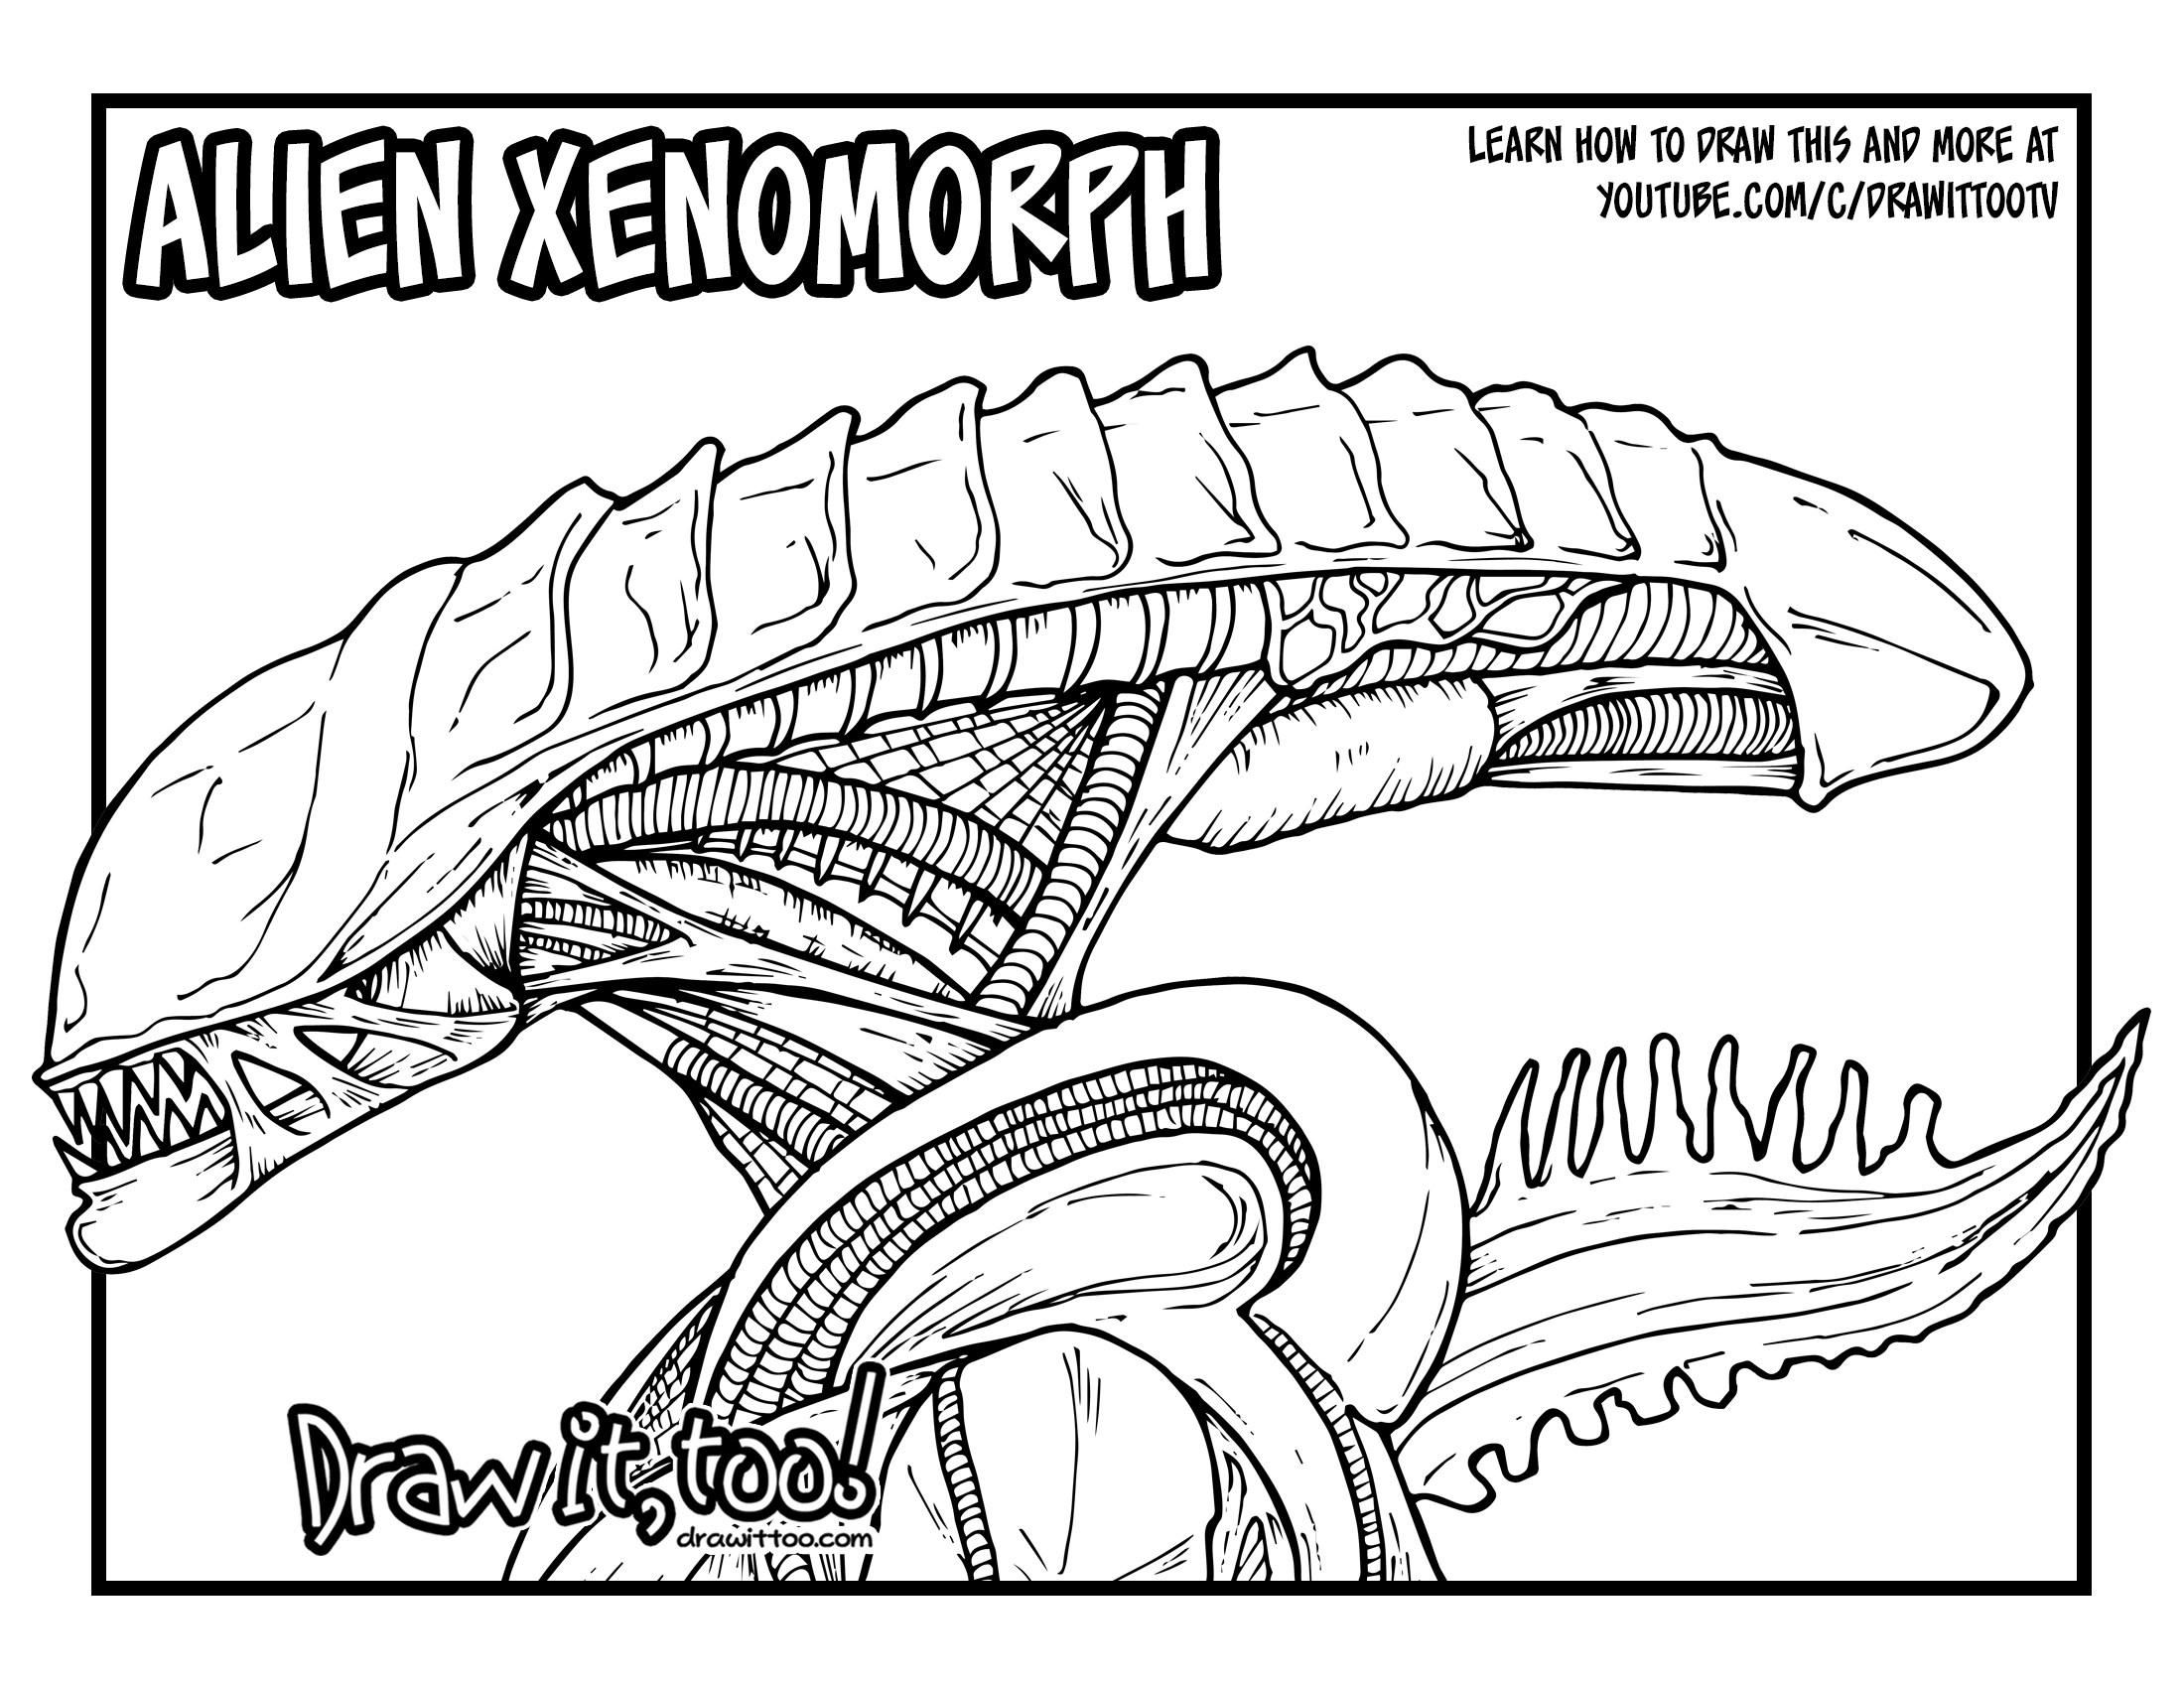 51 Xenomorph Coloring Page Alien Drawings Easy Drawings Coloring Pages